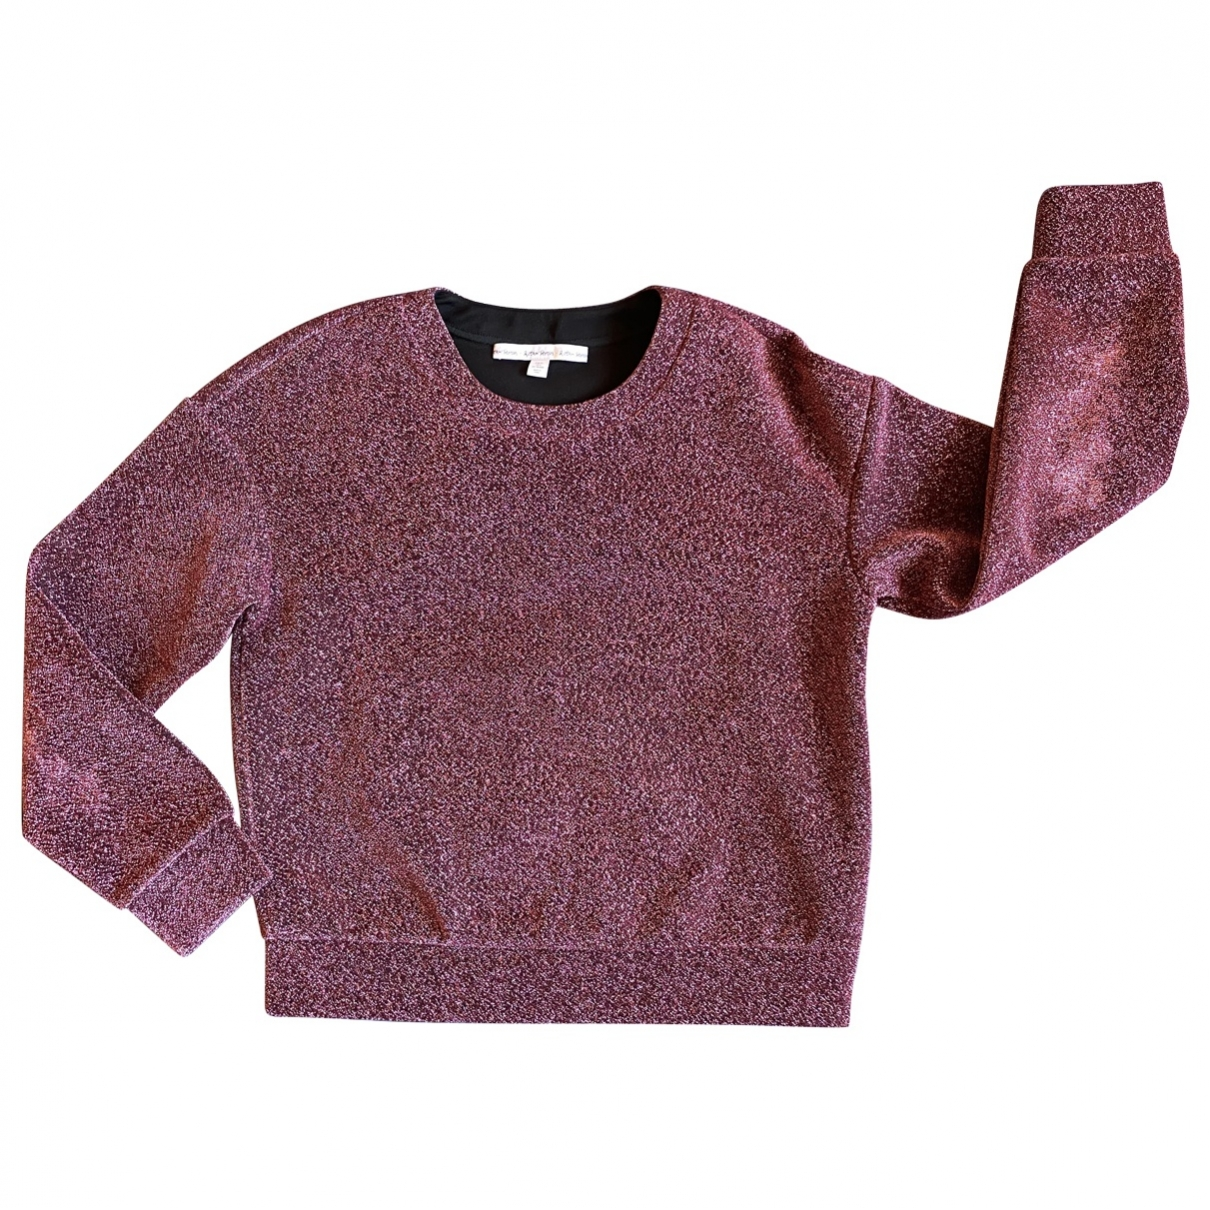 & Other Stories \N Pullover in  Rosa Polyester